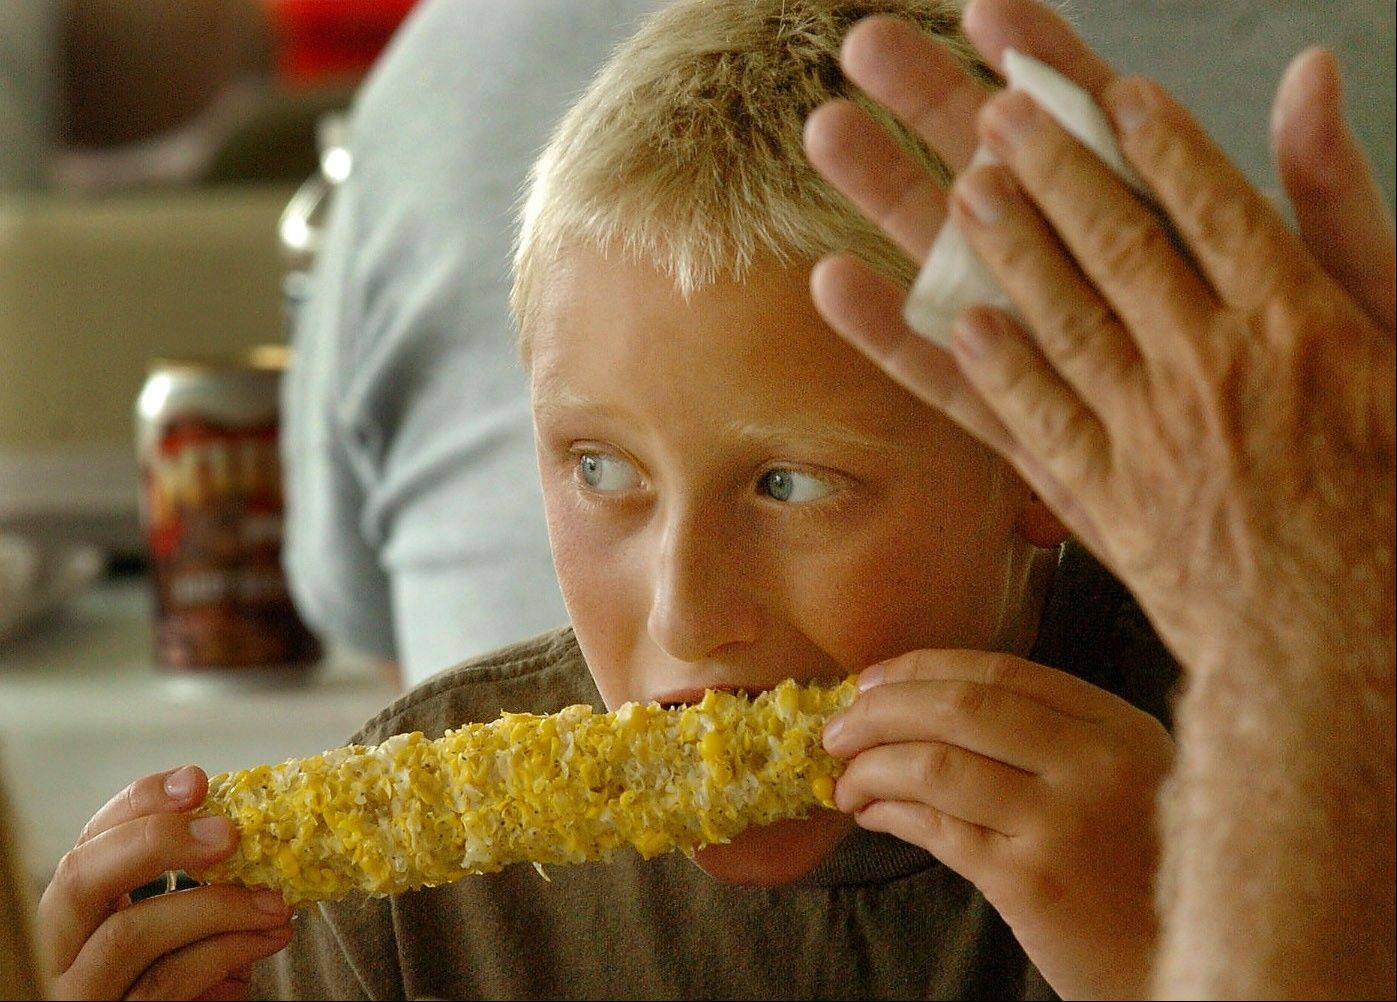 DAILY HERALD FILE PHOTOTen-year-old Josh Dellorto of Arlington Heights tears into an ear of corn at the fest last year.